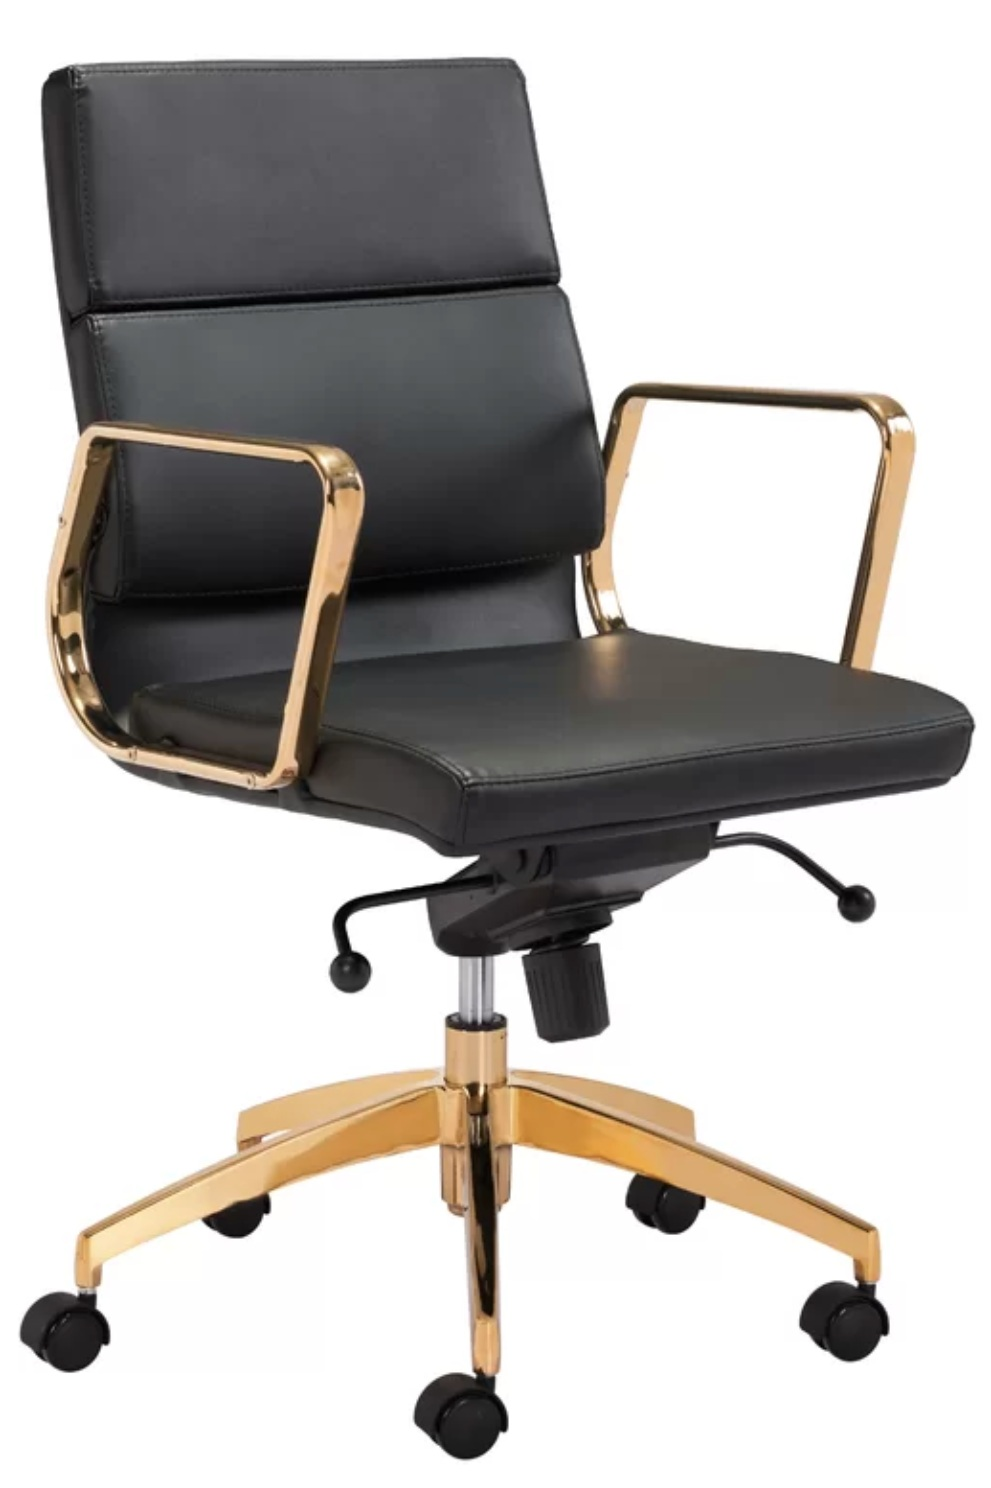 Lakes Low Back Black and Gold Office Chair.